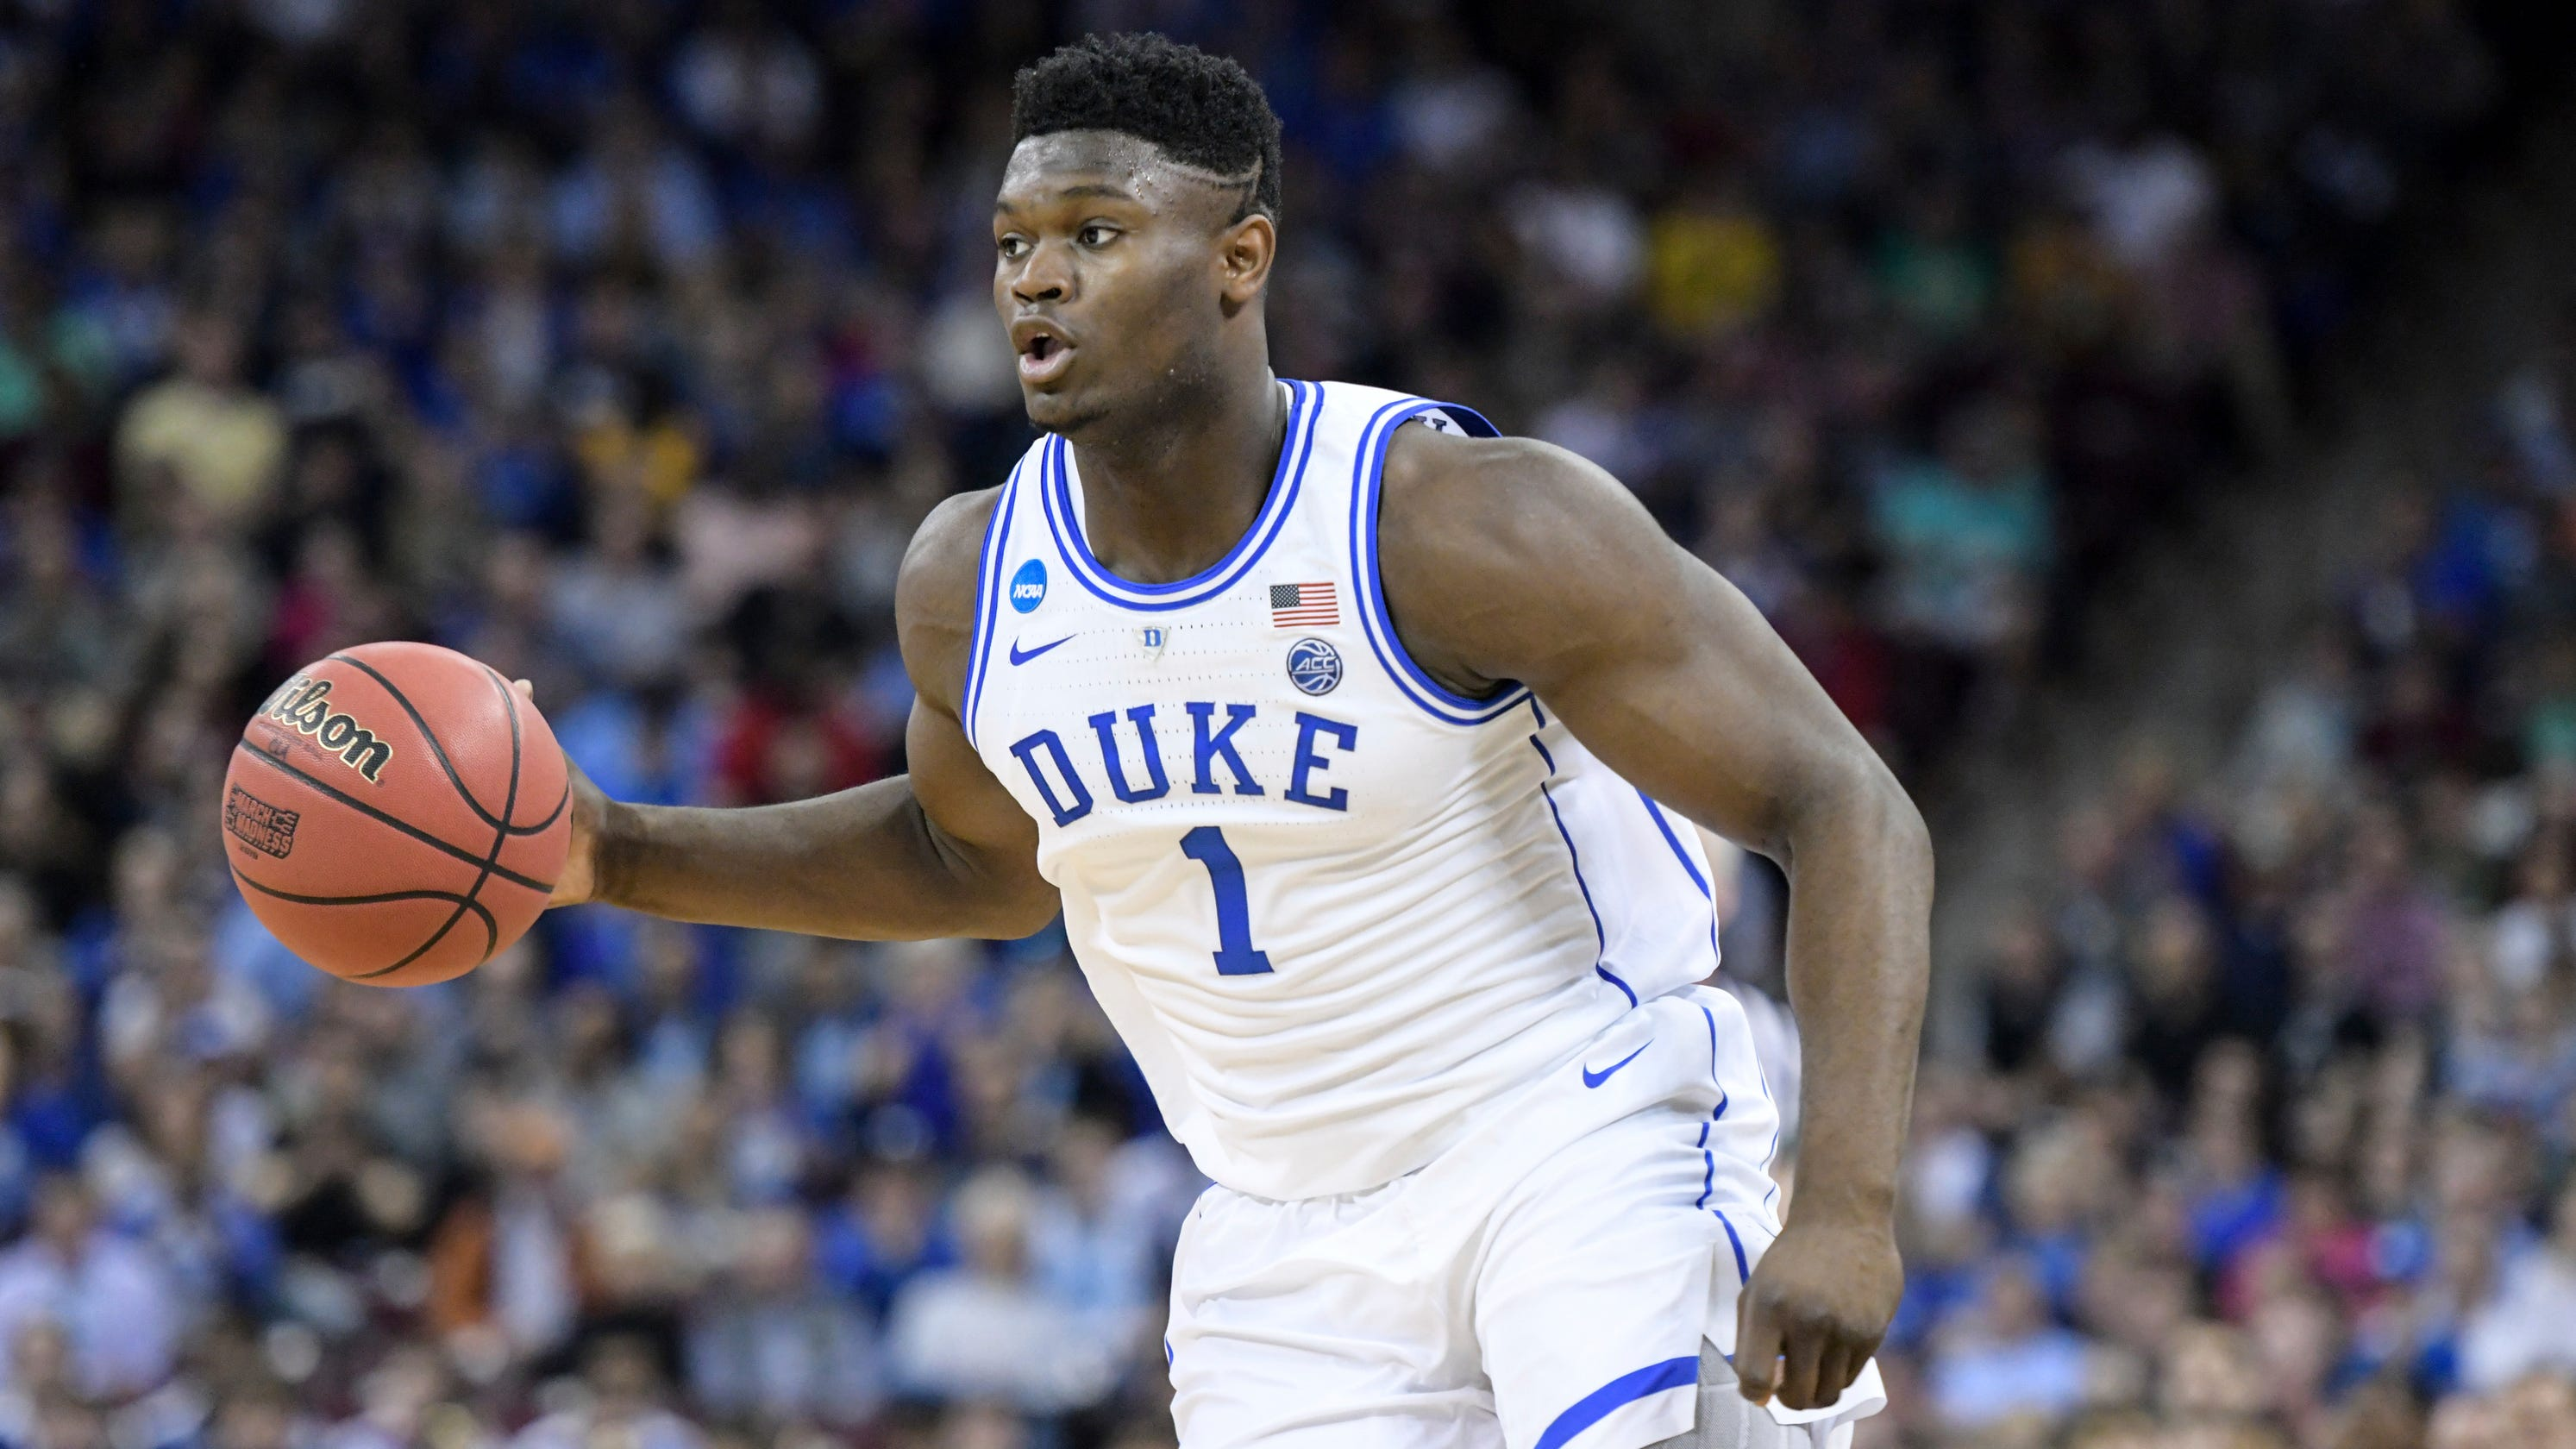 Duke's Zion Williamson named AP player of the year